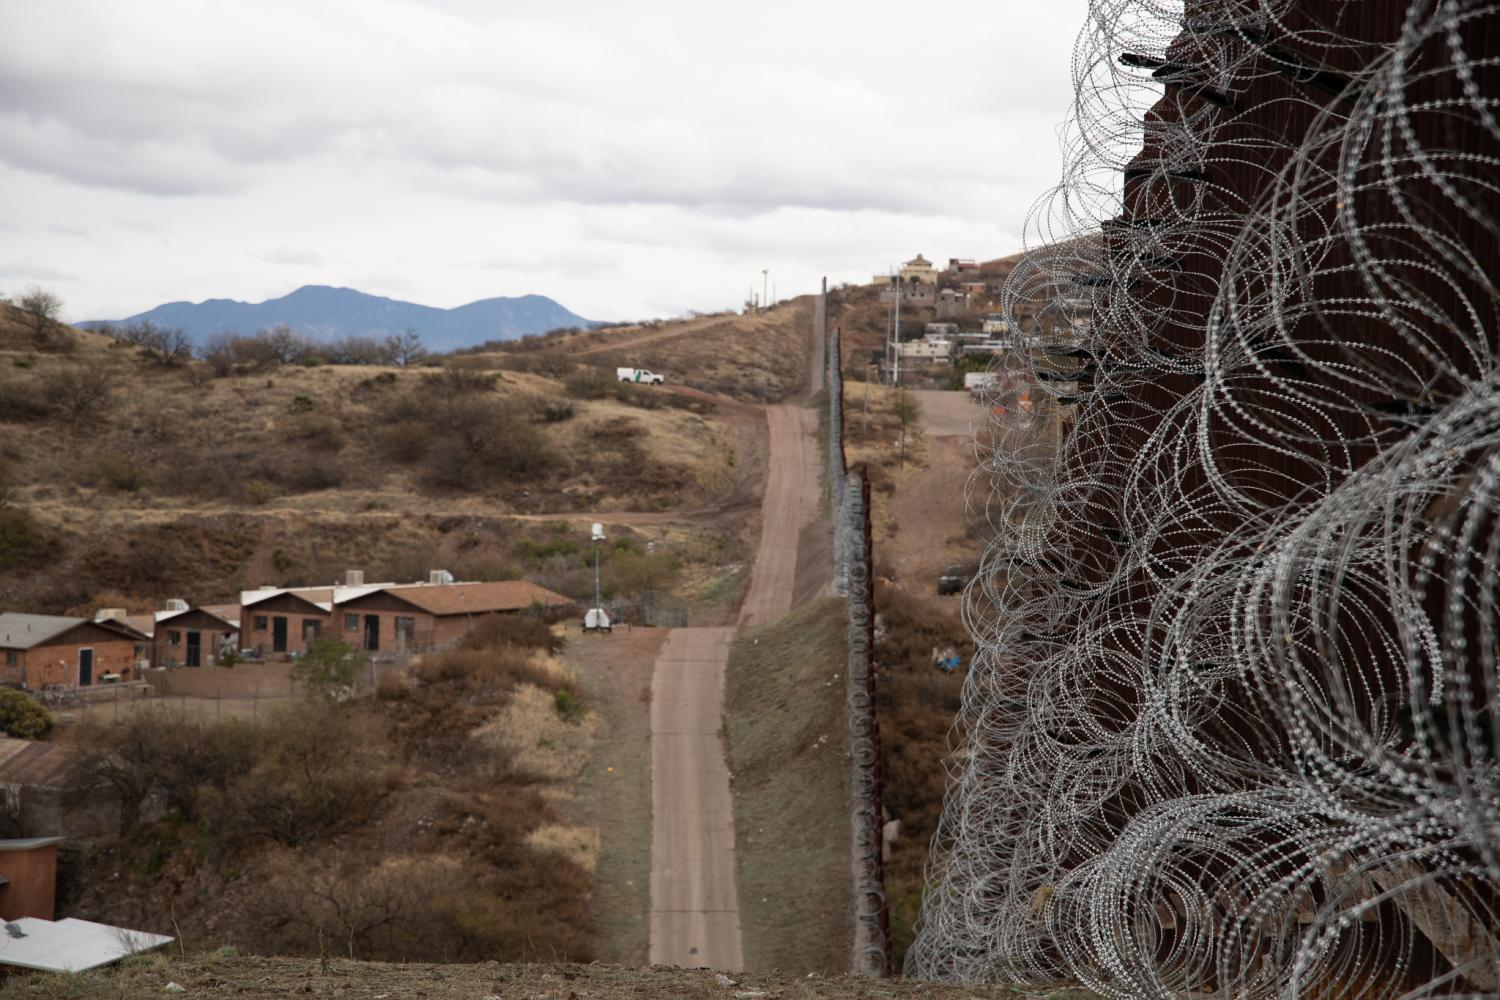 border wall with razor wire